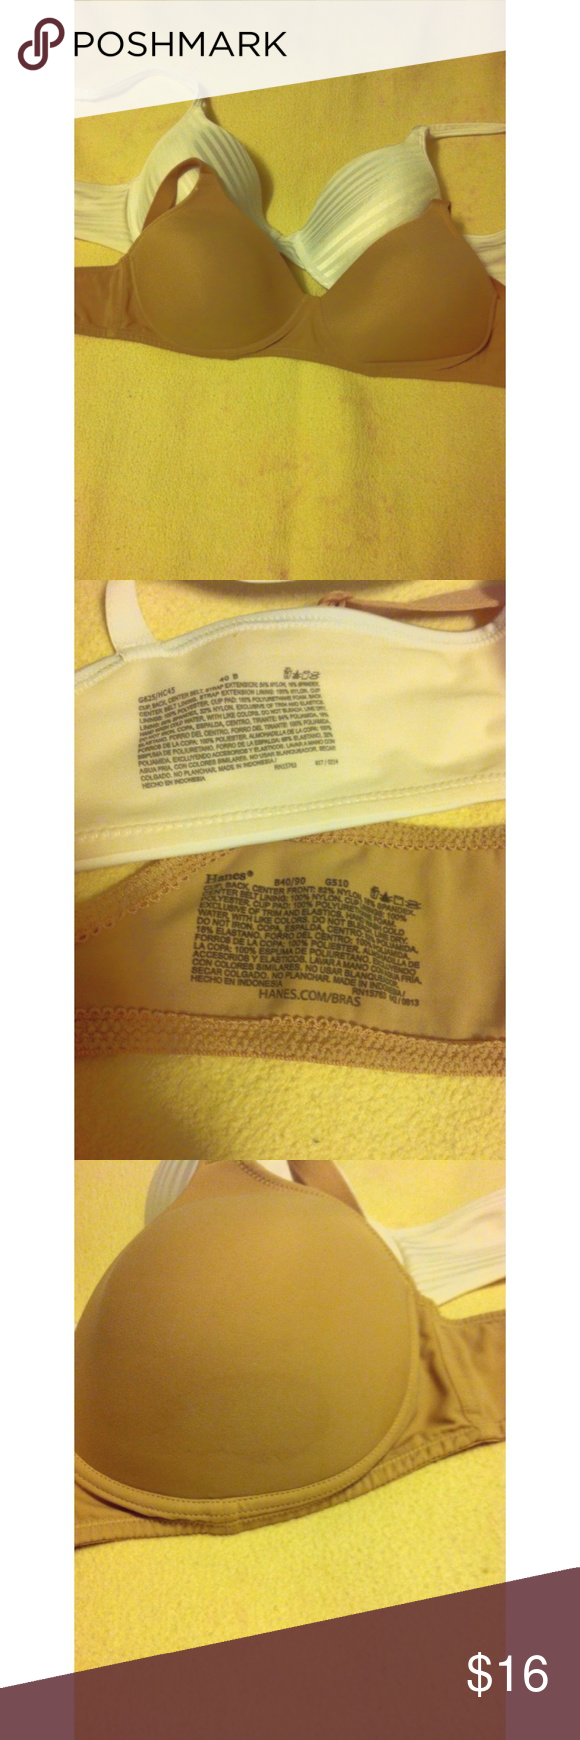 Hanes 40B bra bundle 40B bra bundle! The tan one has a stain on it, but it's barely noticeable & has extra snappy thingies for wider busts. If you don't want the extras, tell me so I can remove it. Hanes Intimates & Sleepwear Bras